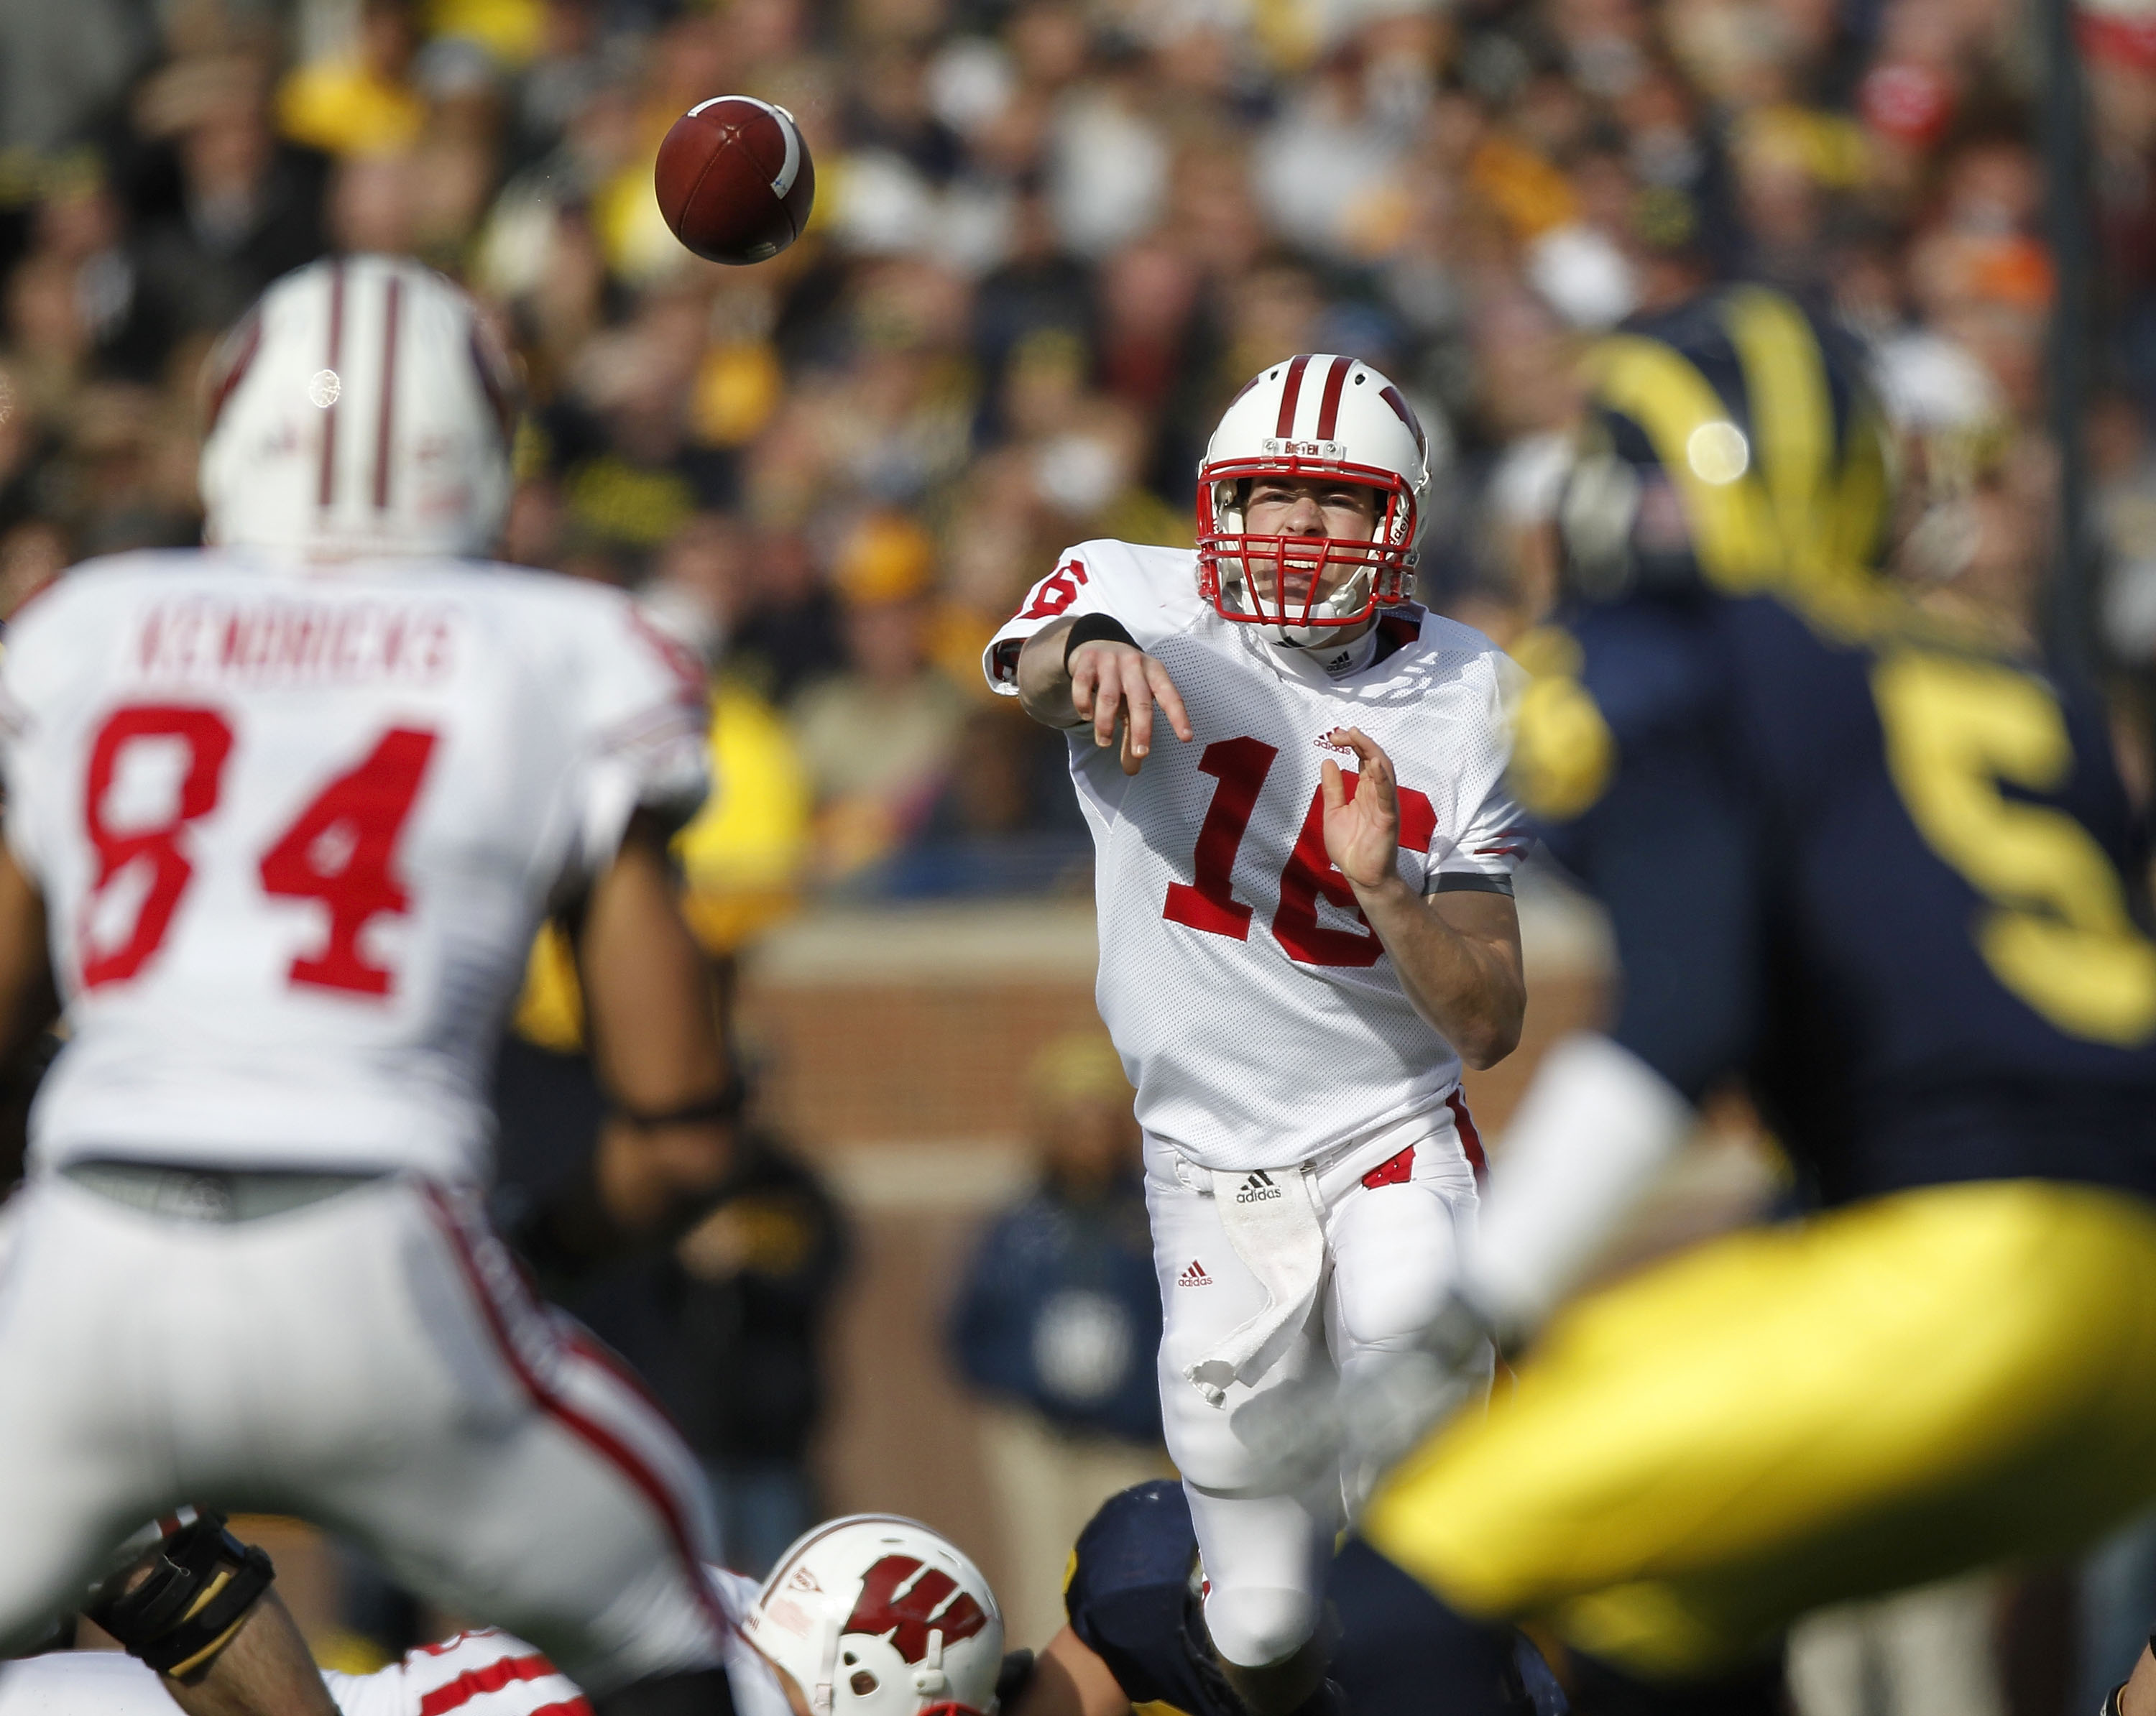 ANN ARBOR, MI - NOVEMBER 20:  Scott Tolzien #16 of the Wisconsin Badgers throws a second quarter pass to Lance Kendricks #84 in front of Courtney Avery #5 of the Michigan Wolverines at Michigan Stadium on November 20, 2010 in Ann Arbor, Michigan.  (Photo